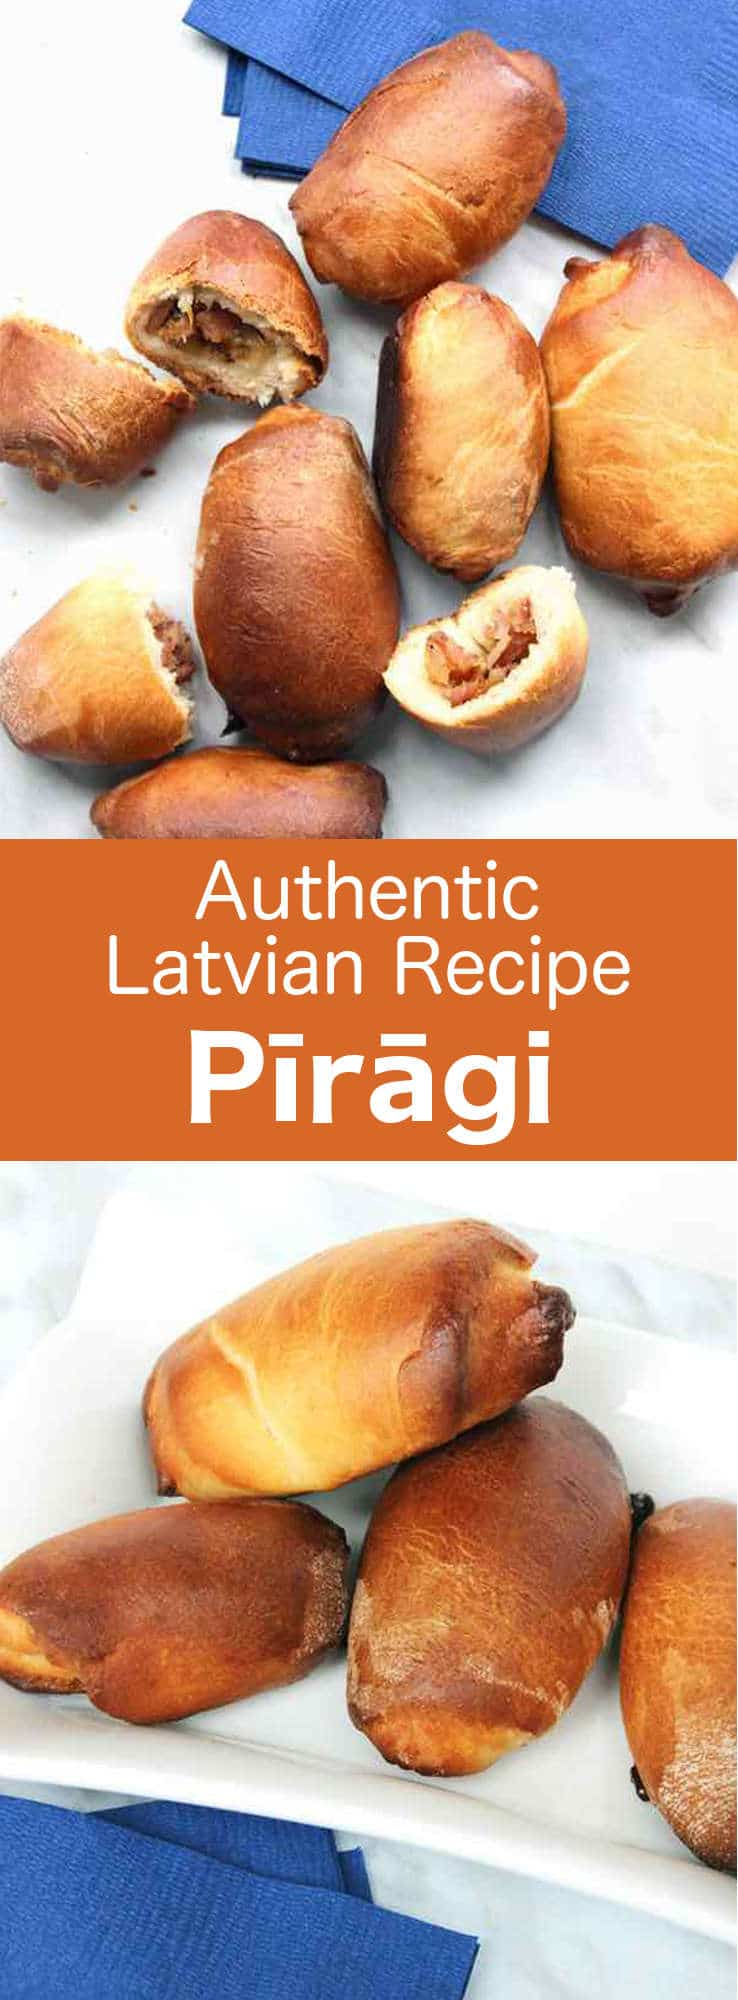 Pīrāgi (or pīrādziņi) are oblong or crescent-shaped Latvian bread rolls that are often filled with chopped bacon and onion. #Latvia #196flavors